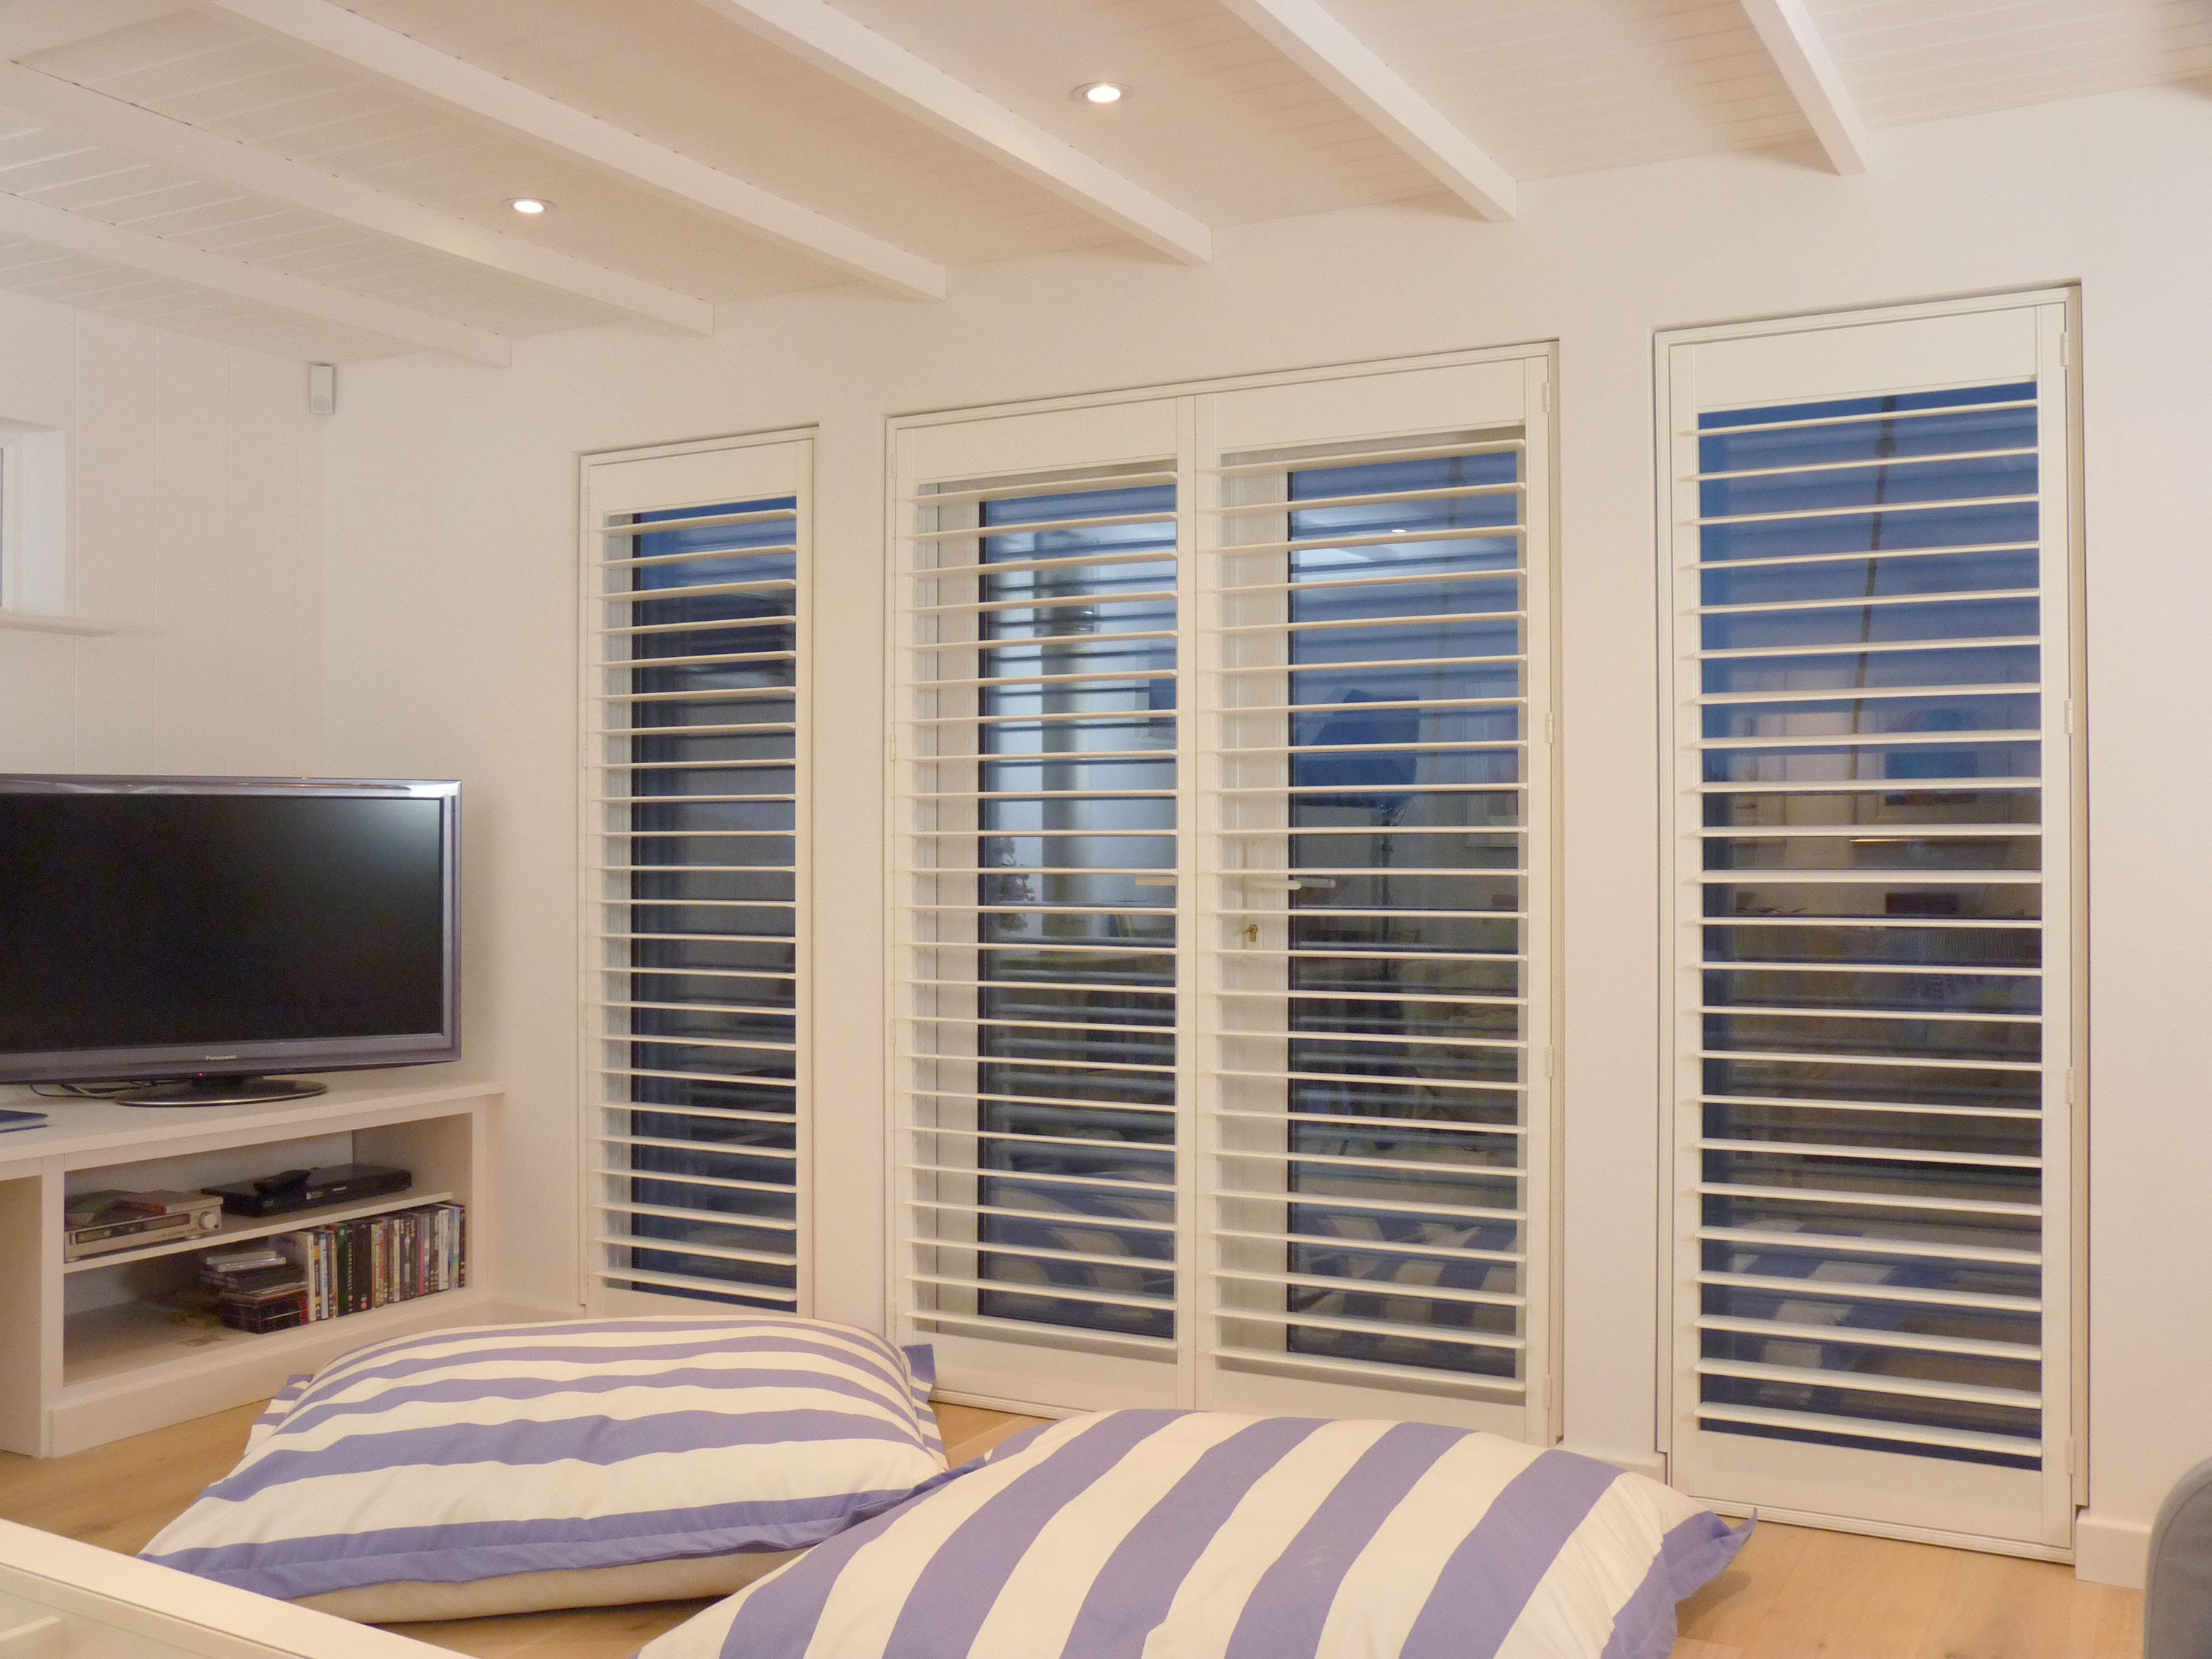 Amazing outdoor window shutter ideas carehomedecor for Window shutter designs